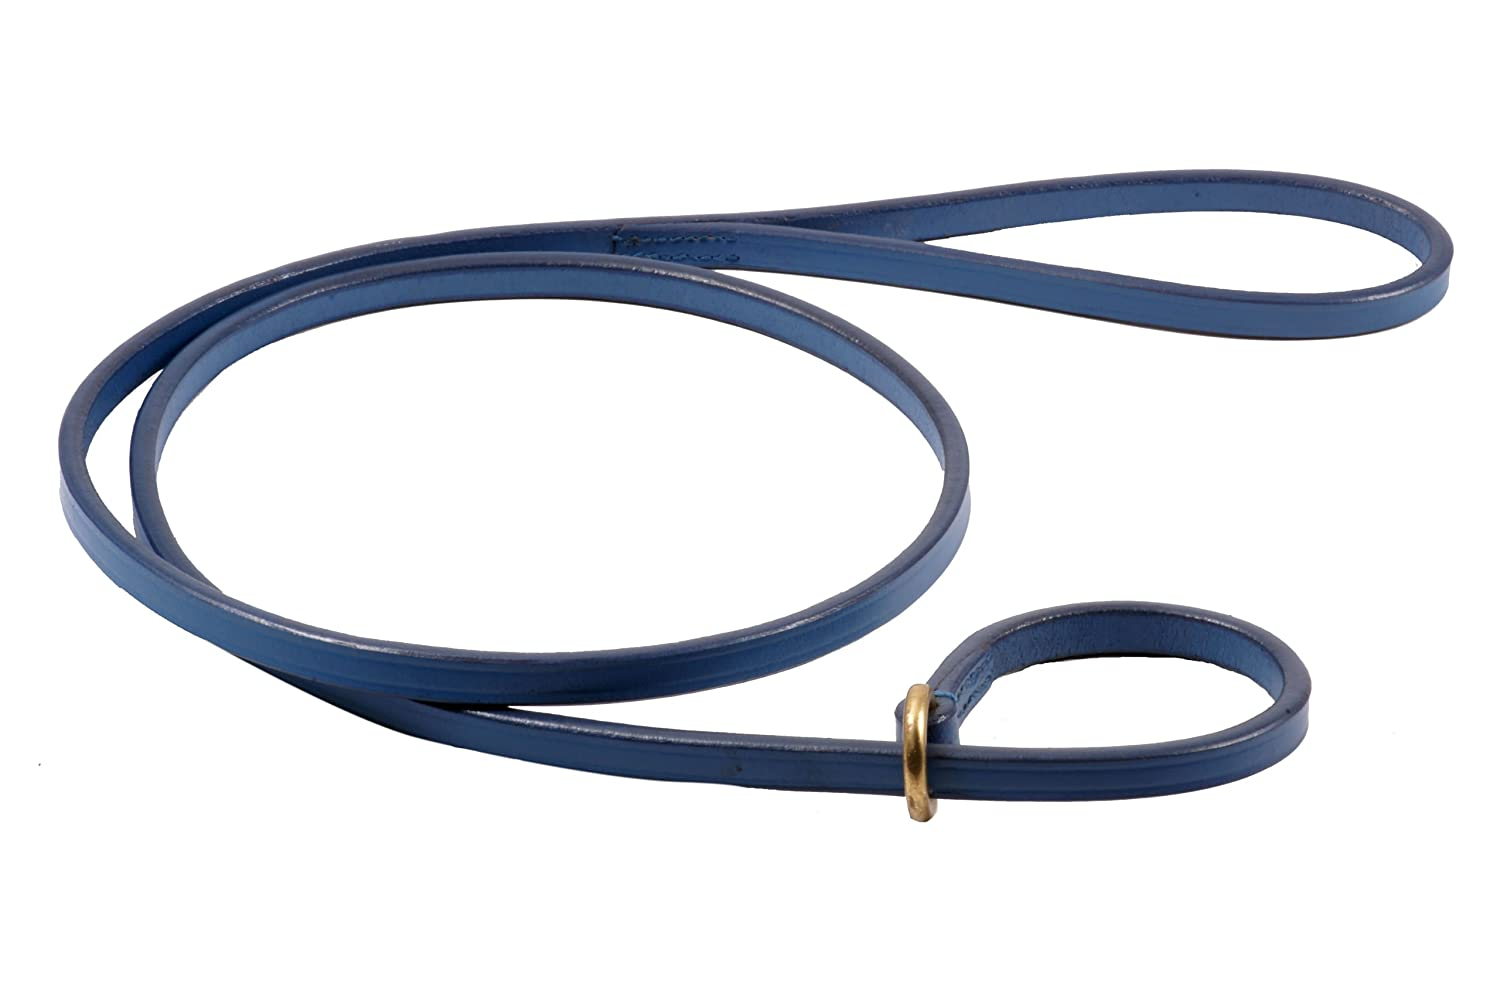 bluee Alvalley Flat Slip Lead for Dogs 3 16 in x 4ft